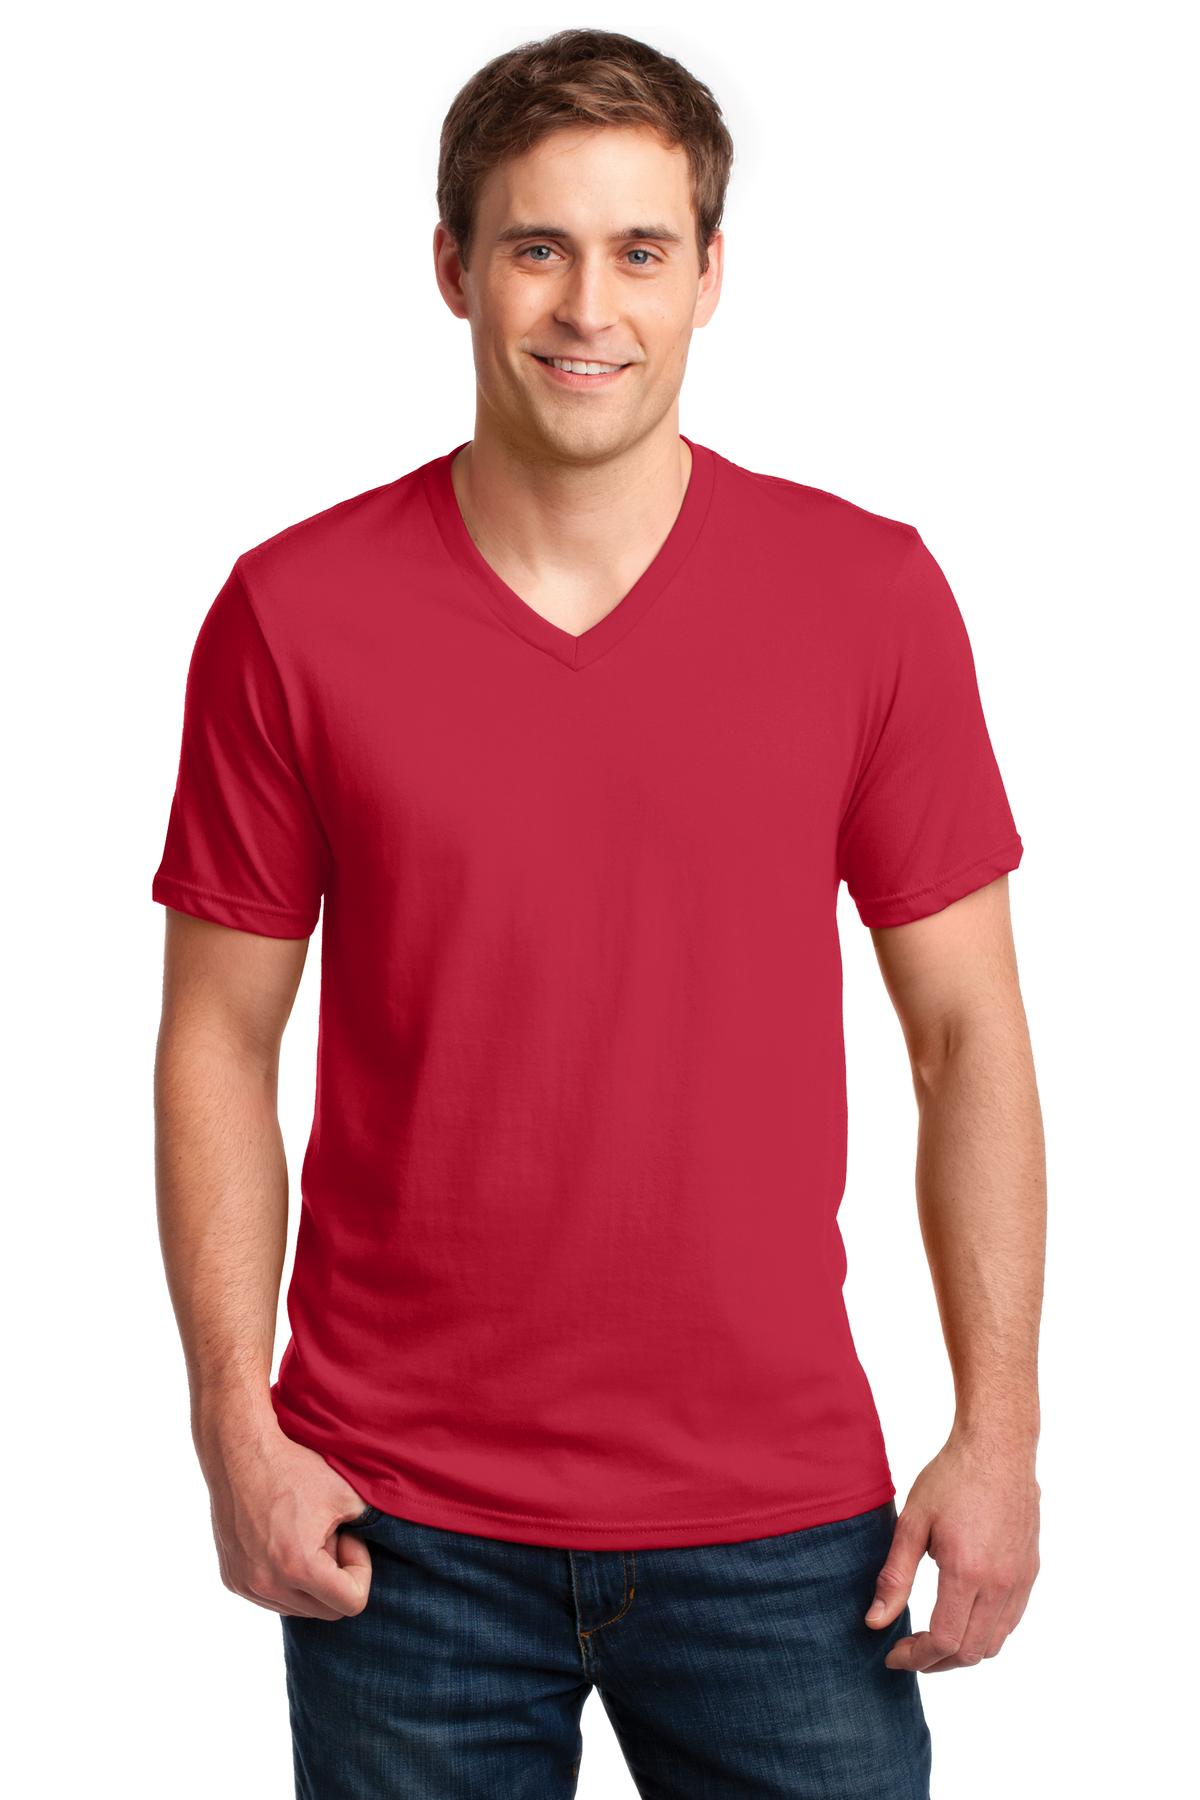 Anvil 100% Combed Ring Spun Cotton V-Neck T-Shirt. 982